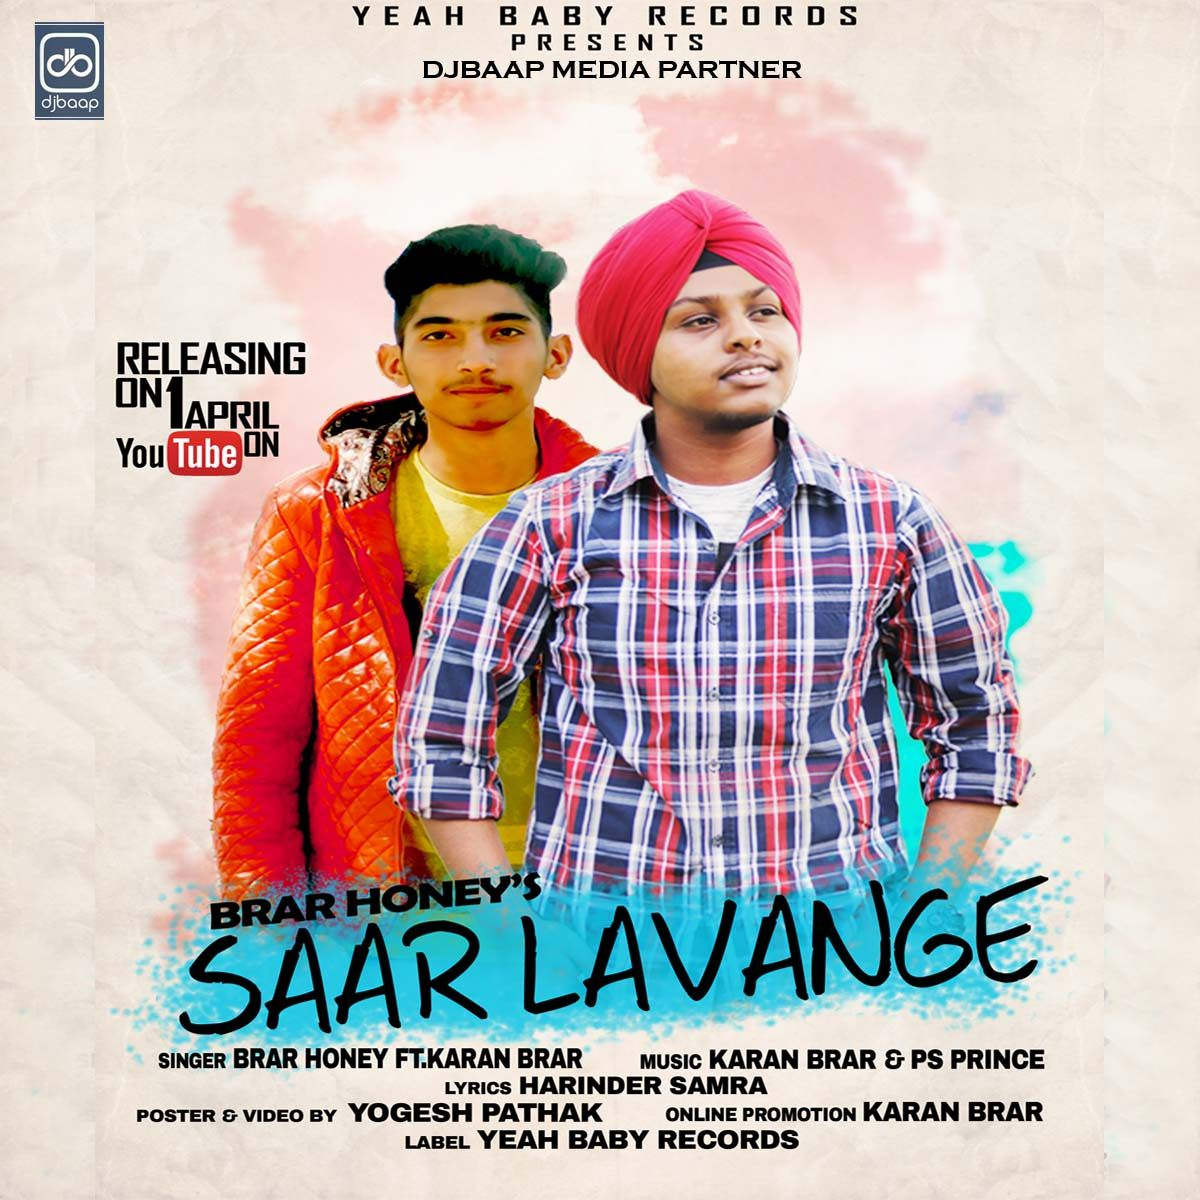 Saar Lavange Mp3 Song Belongs New Punjabi Songs Saar Lavange By Brar Honey Karan Brar Saar Lavange Available To Free Download Romantic Songs Songs Mp3 Song